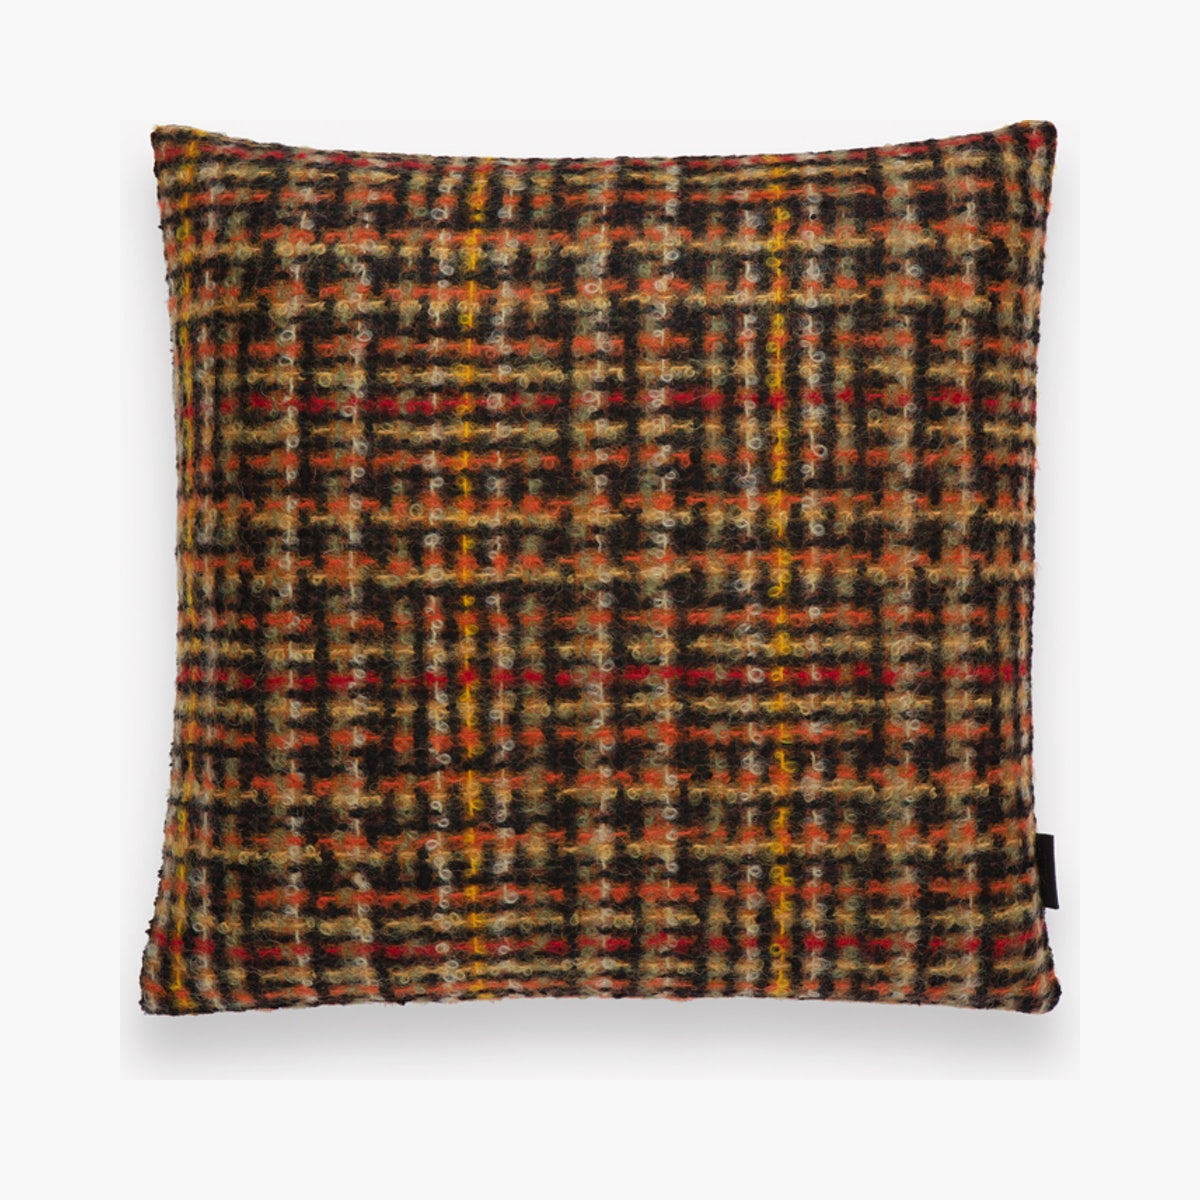 Maharam Pillow - Passel